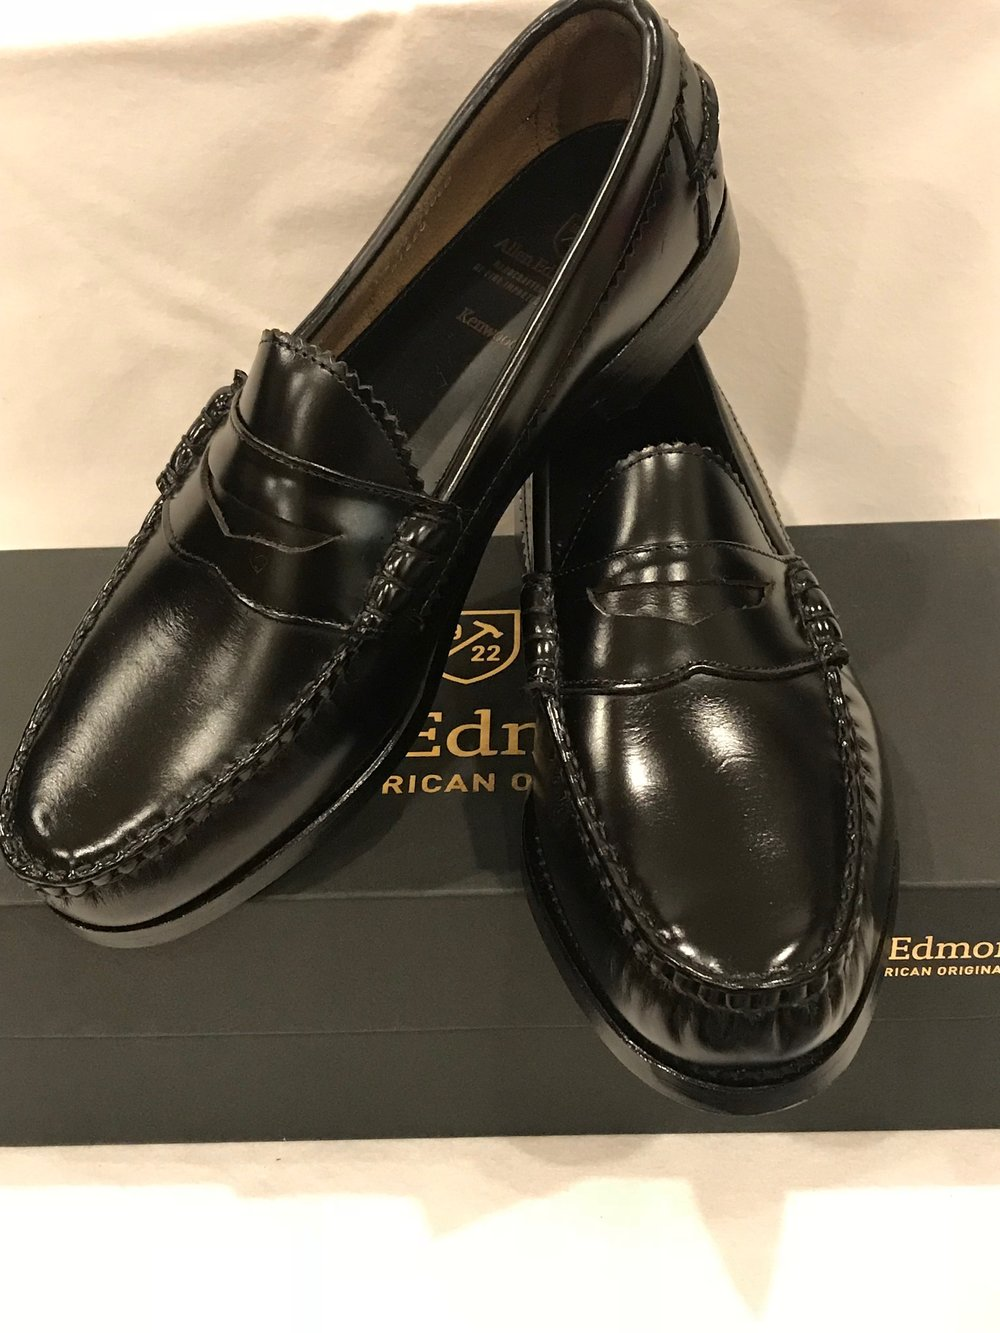 c67b2aa78ed A Review of the Allen Edmonds Kenwood Black Penny Loafer (+ M.Gemi ...